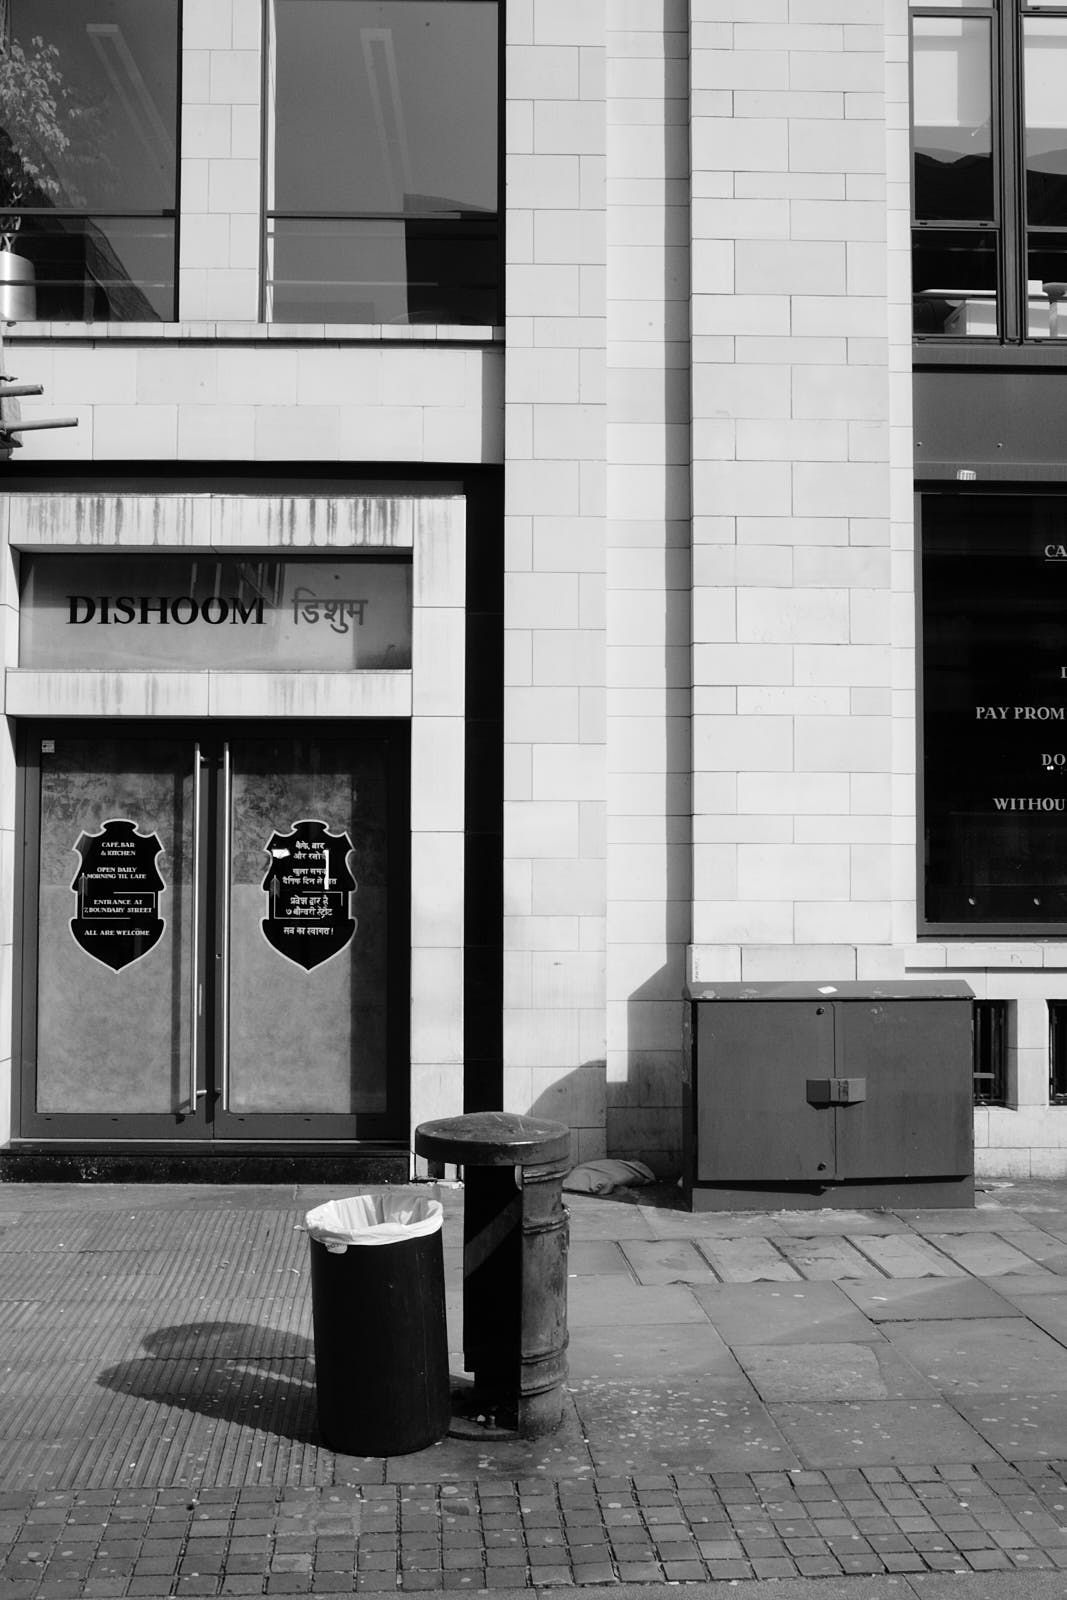 The exterior of Dishoom restaurant in Shoreditch, London